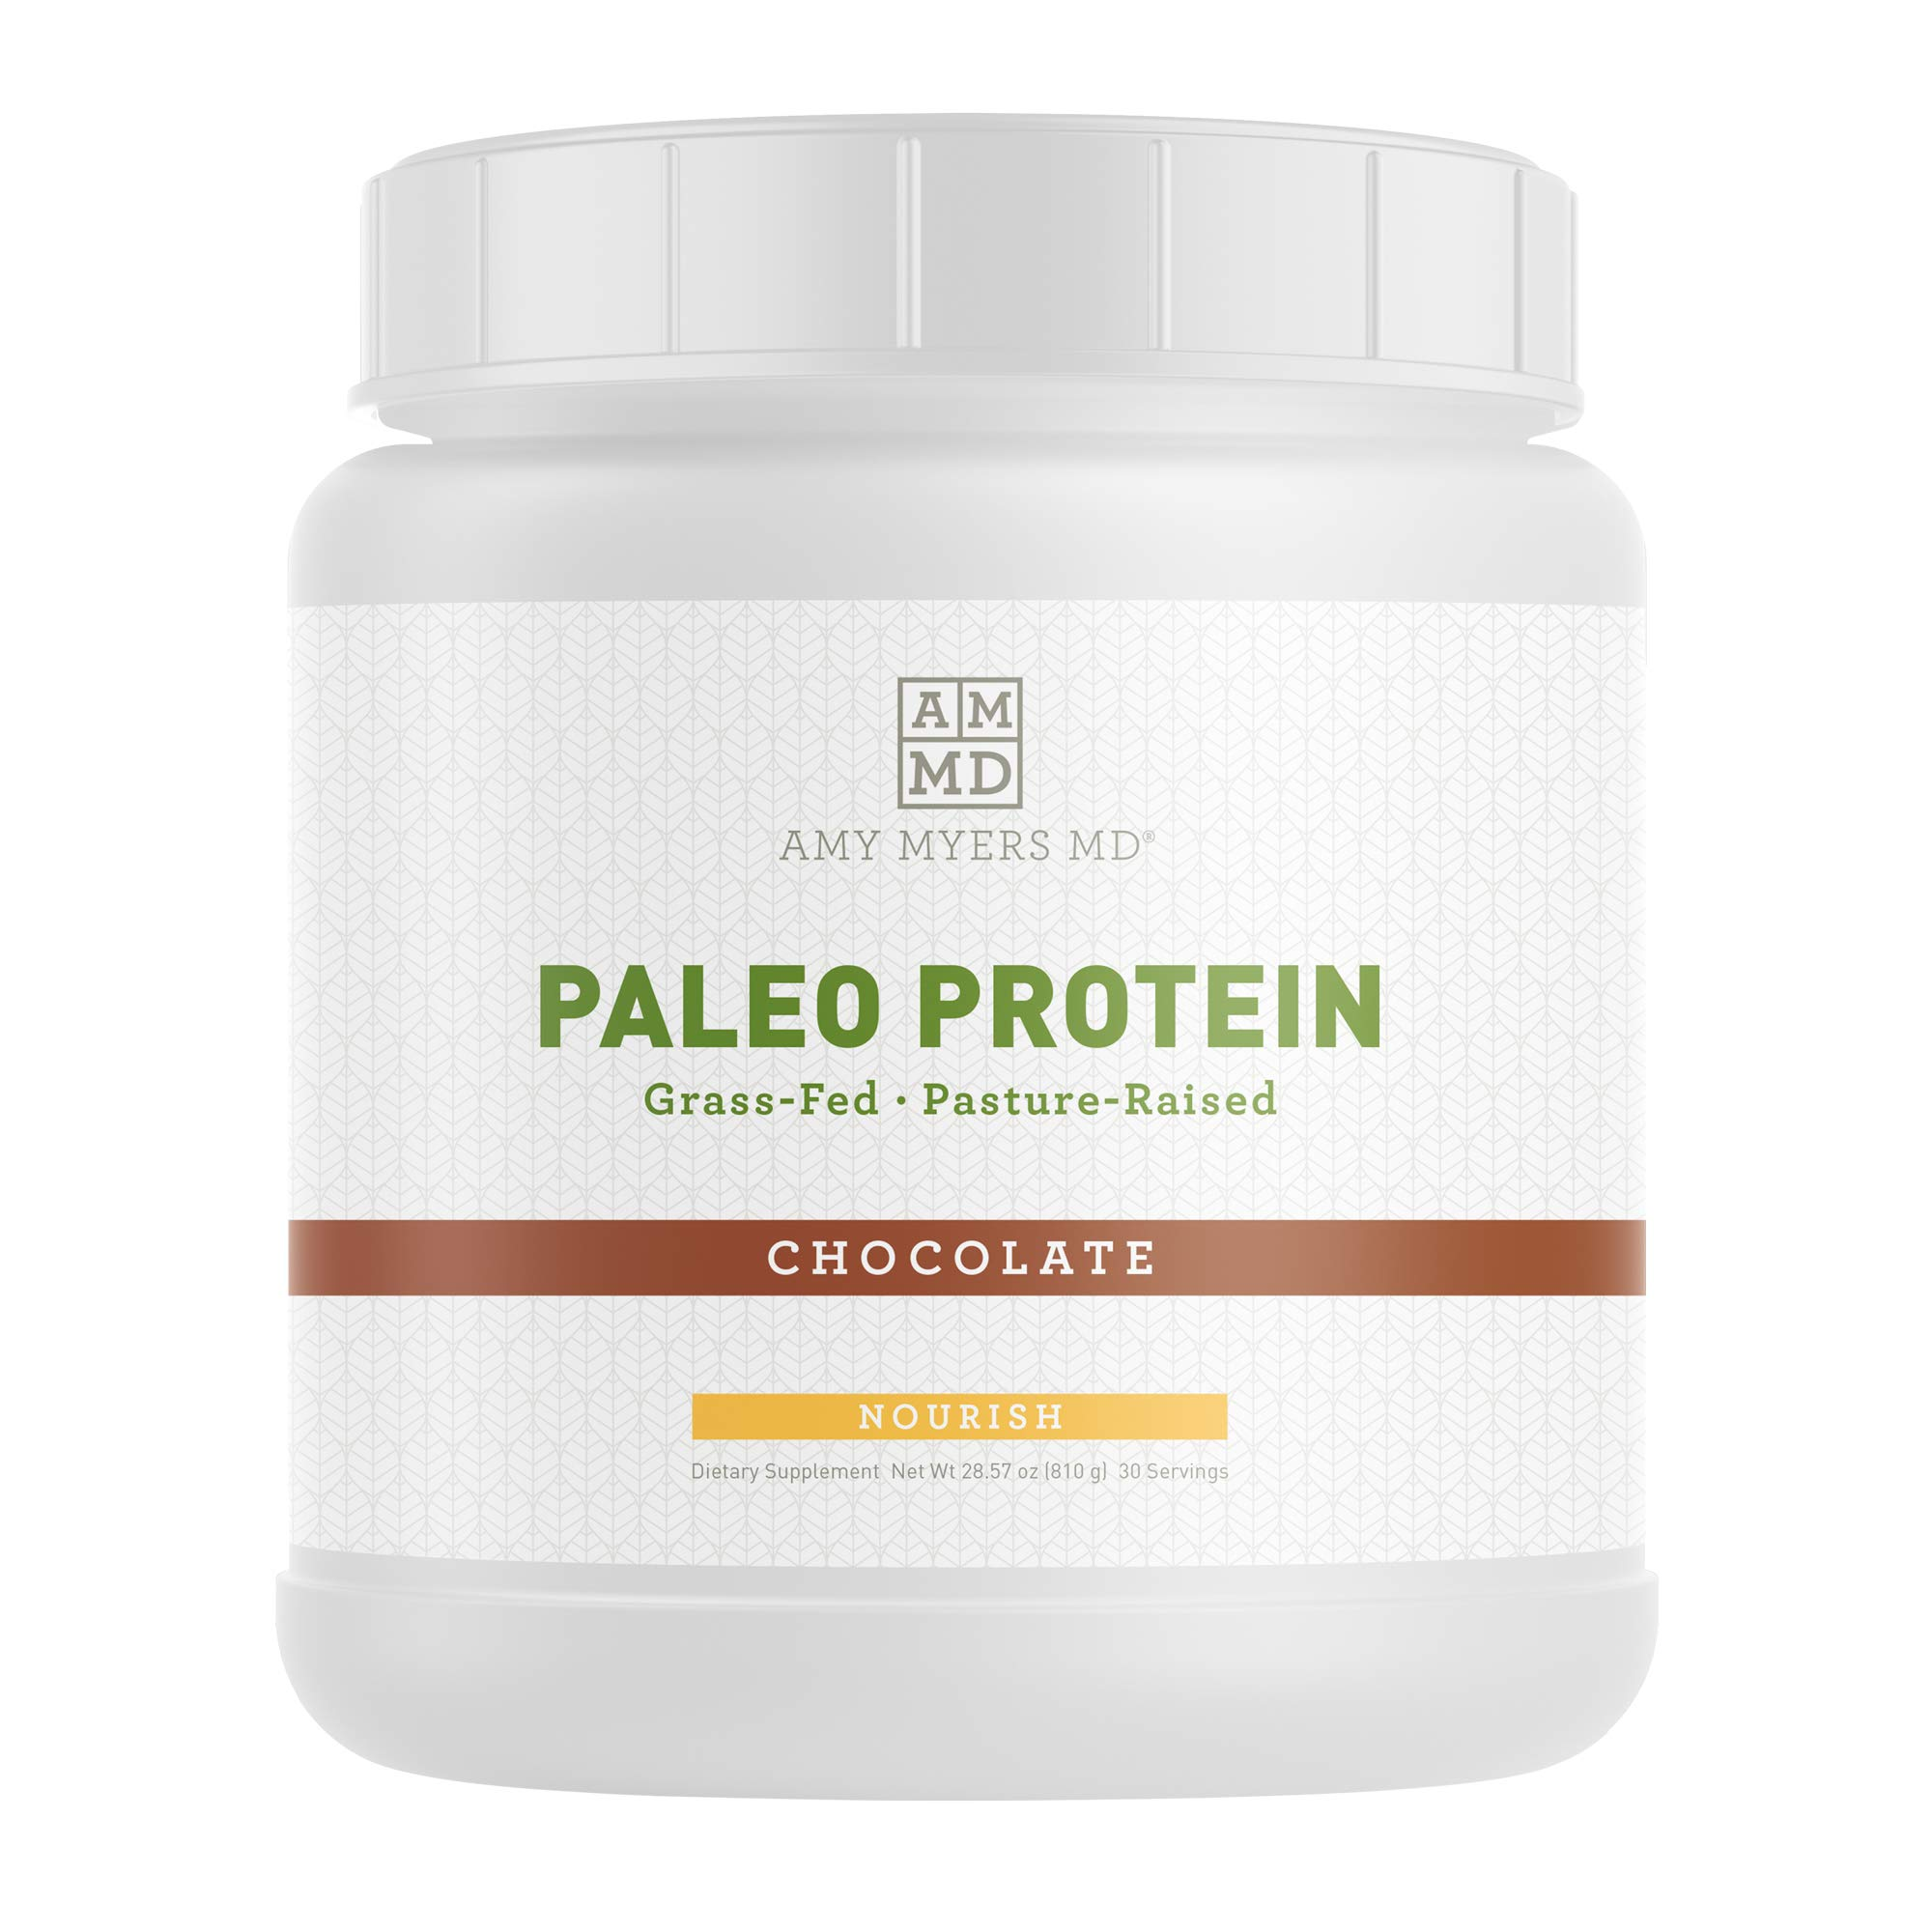 Pure Paleo Protein by Dr. Amy Myers - Clean Grass Fed, Pasture Raised Hormone Free Protein, Non-GMO, Gluten & Dairy Free - 21g Protein Per Serving - Rich Chocolate Protein Shake by Amy Myers, MD